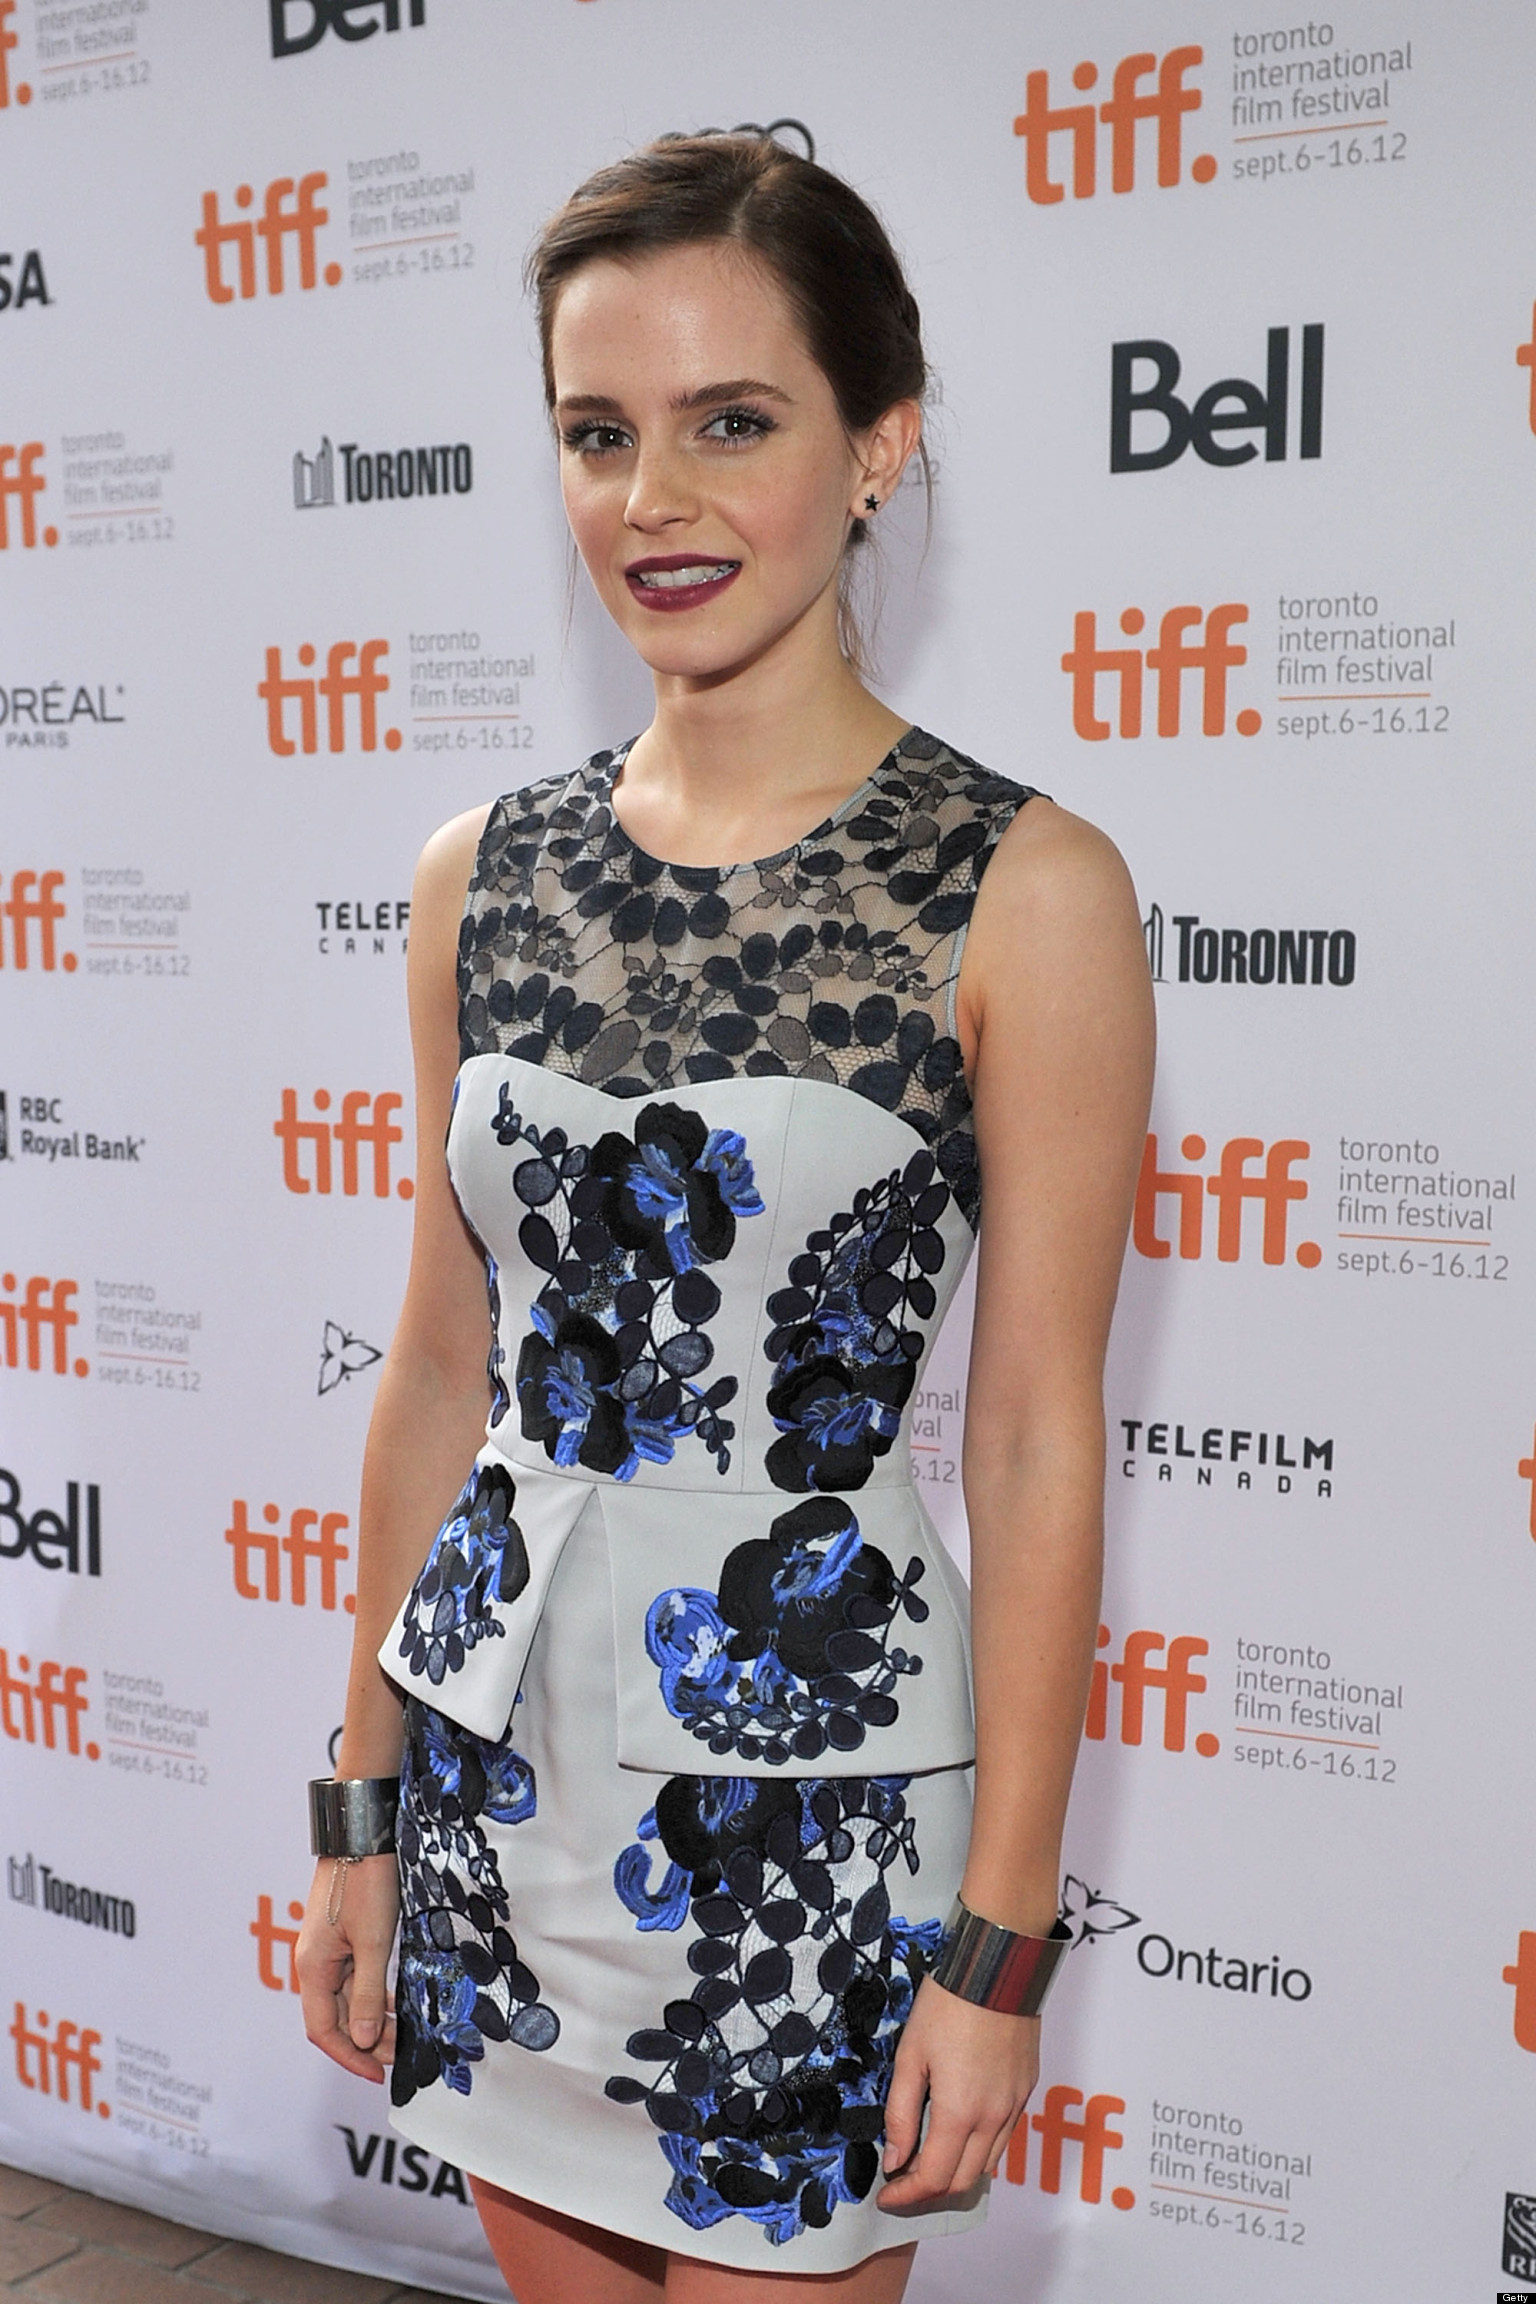 Emma Watson Tiff 2012 Actress Walks Red Carpet In Outfit